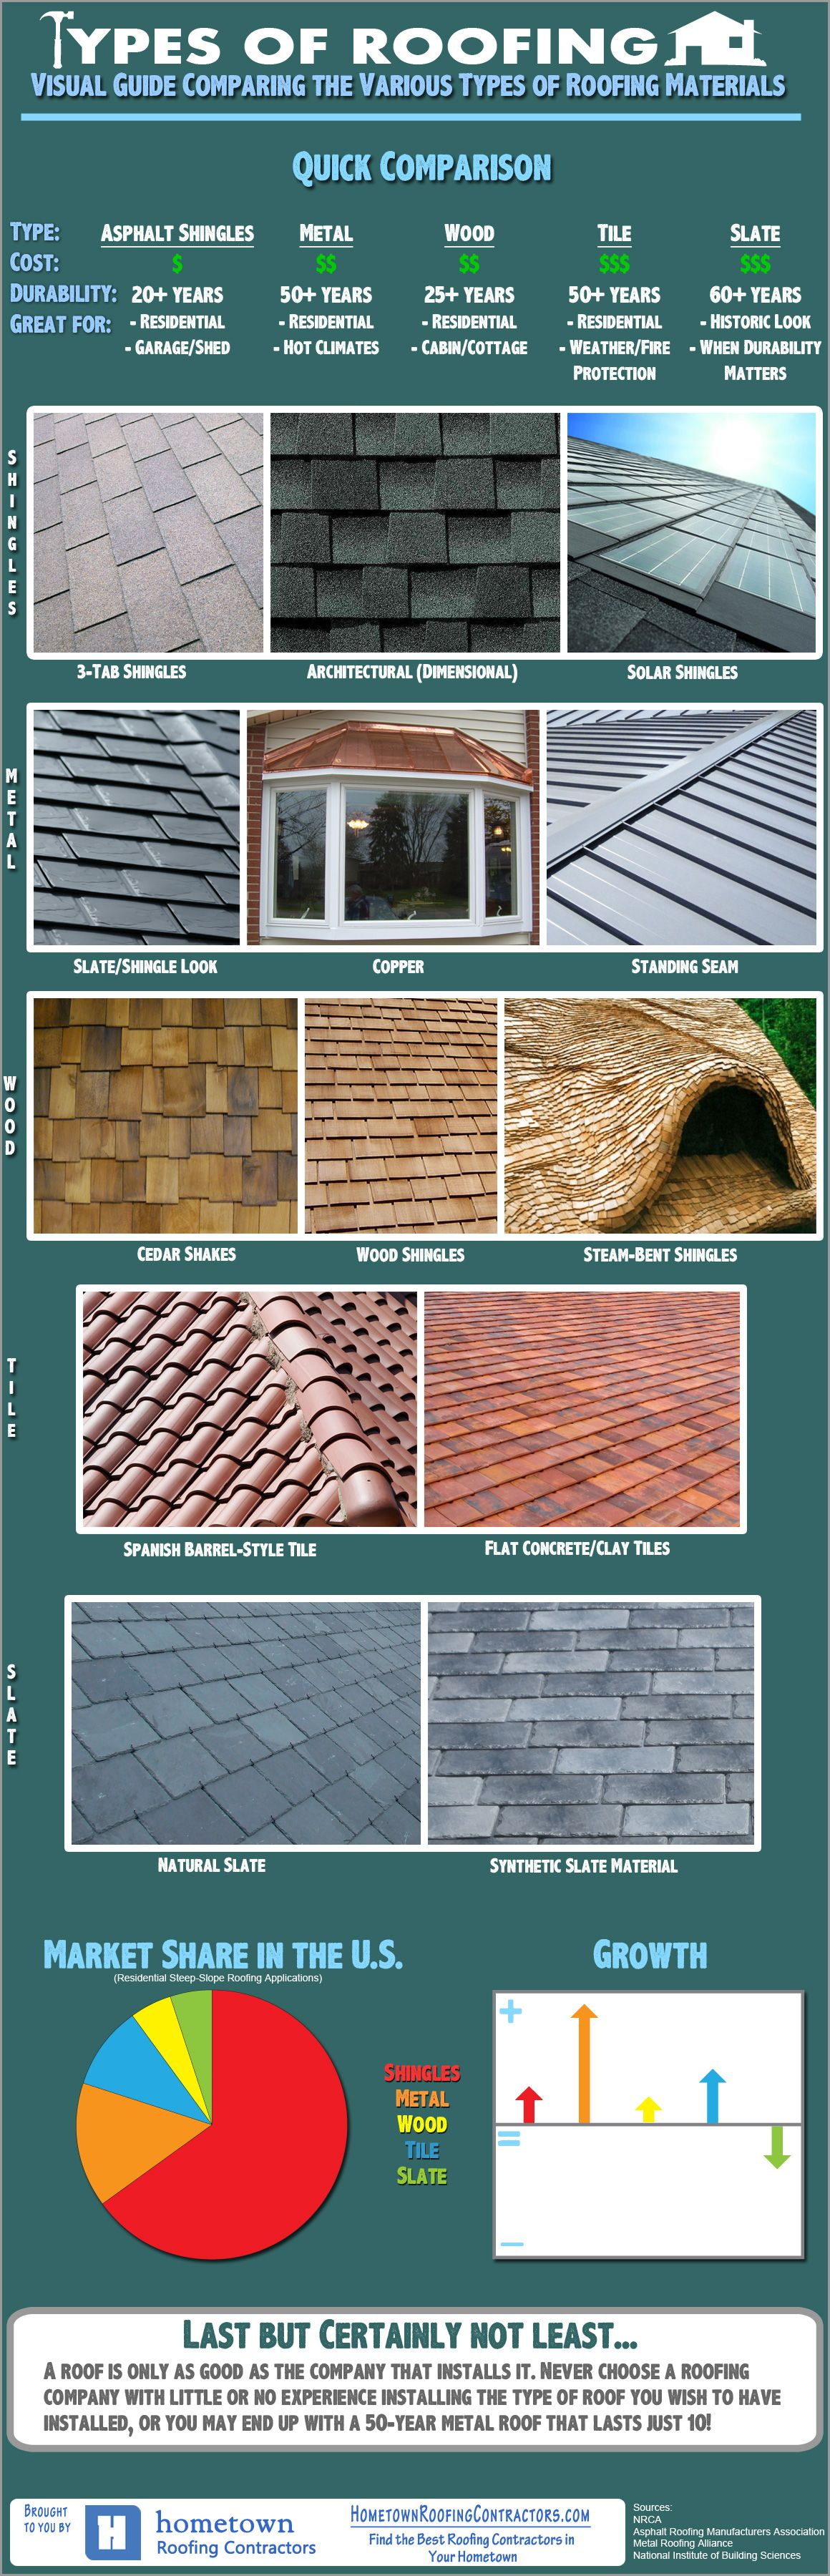 Interesting insight into materials benefits and costs of for Types of roofing materials and cost